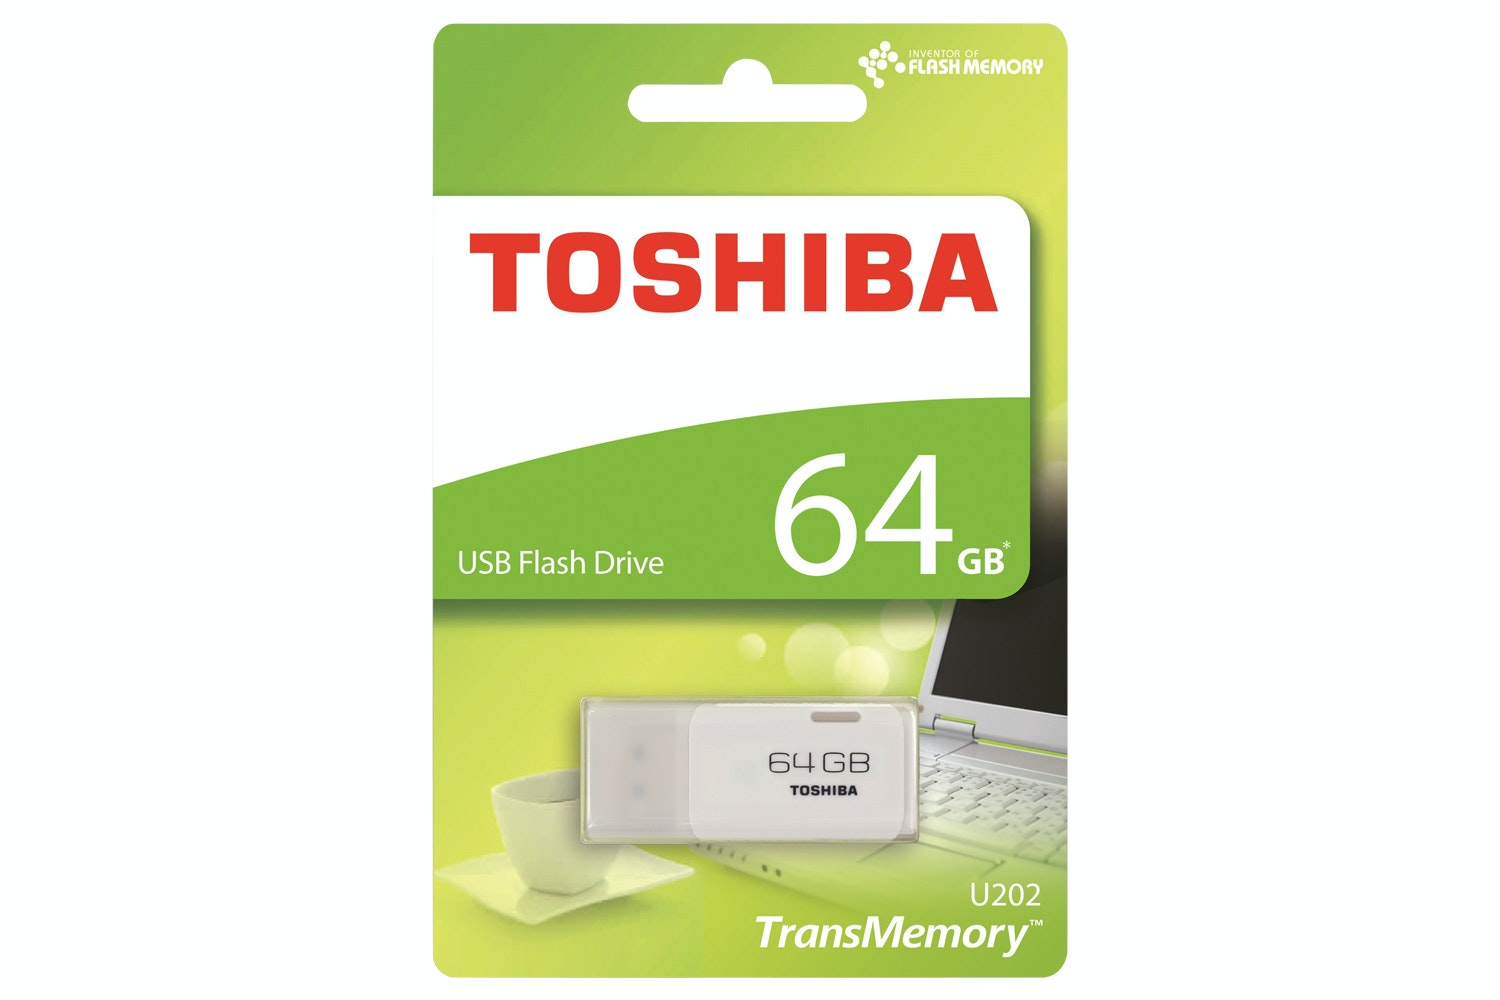 Toshiba 64GB USB Key | White